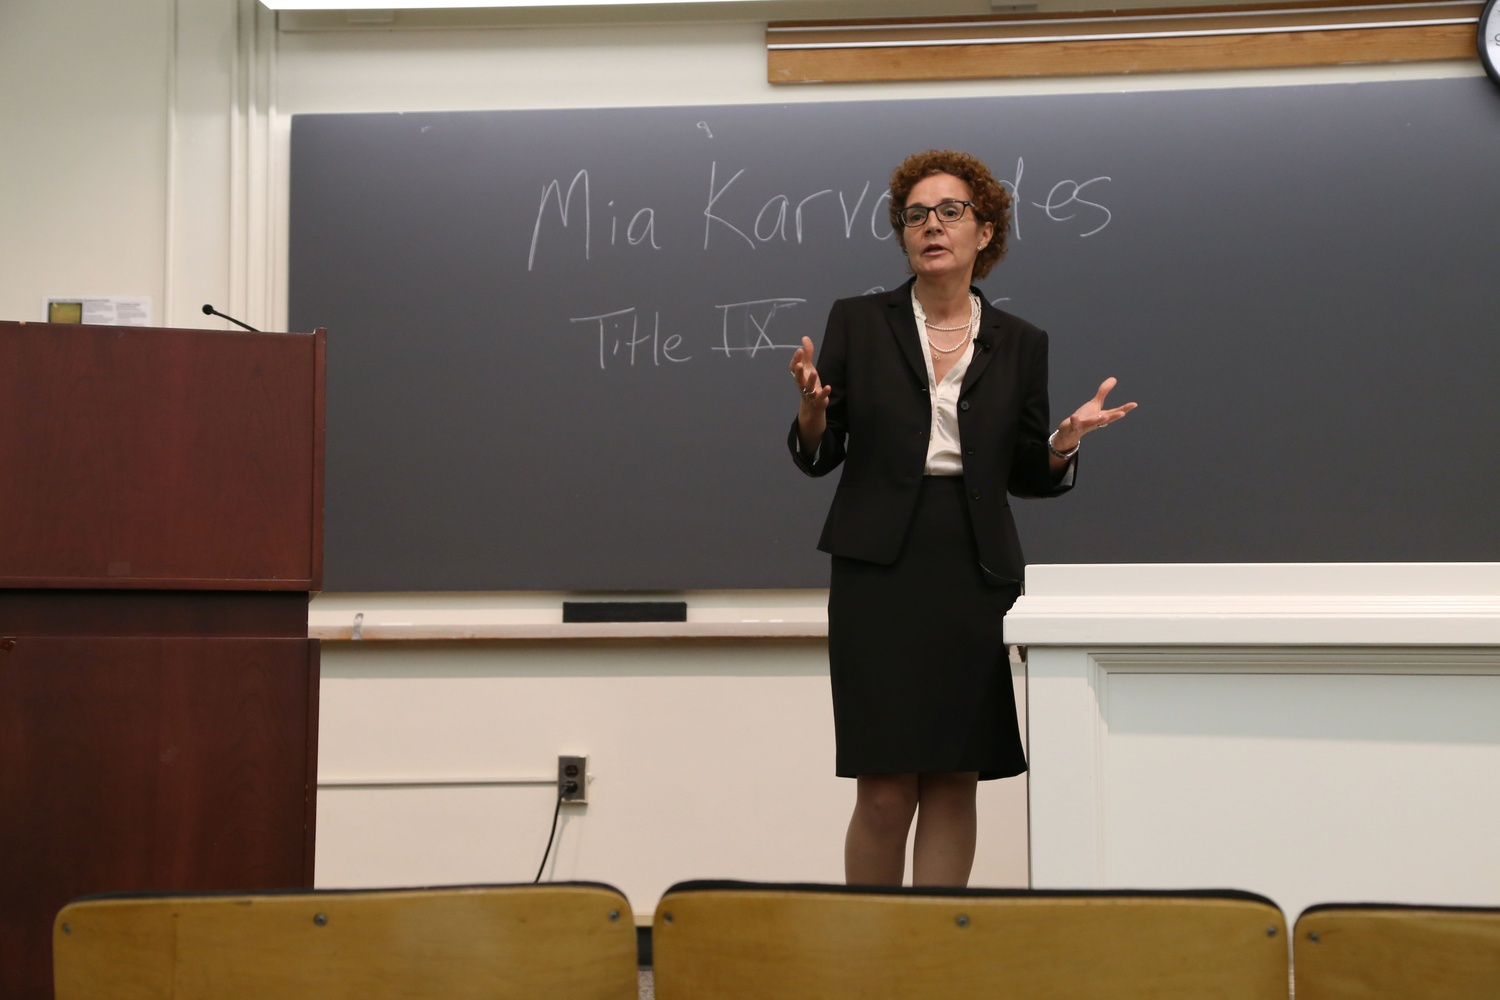 Harvard law professors title ix sexual harassment